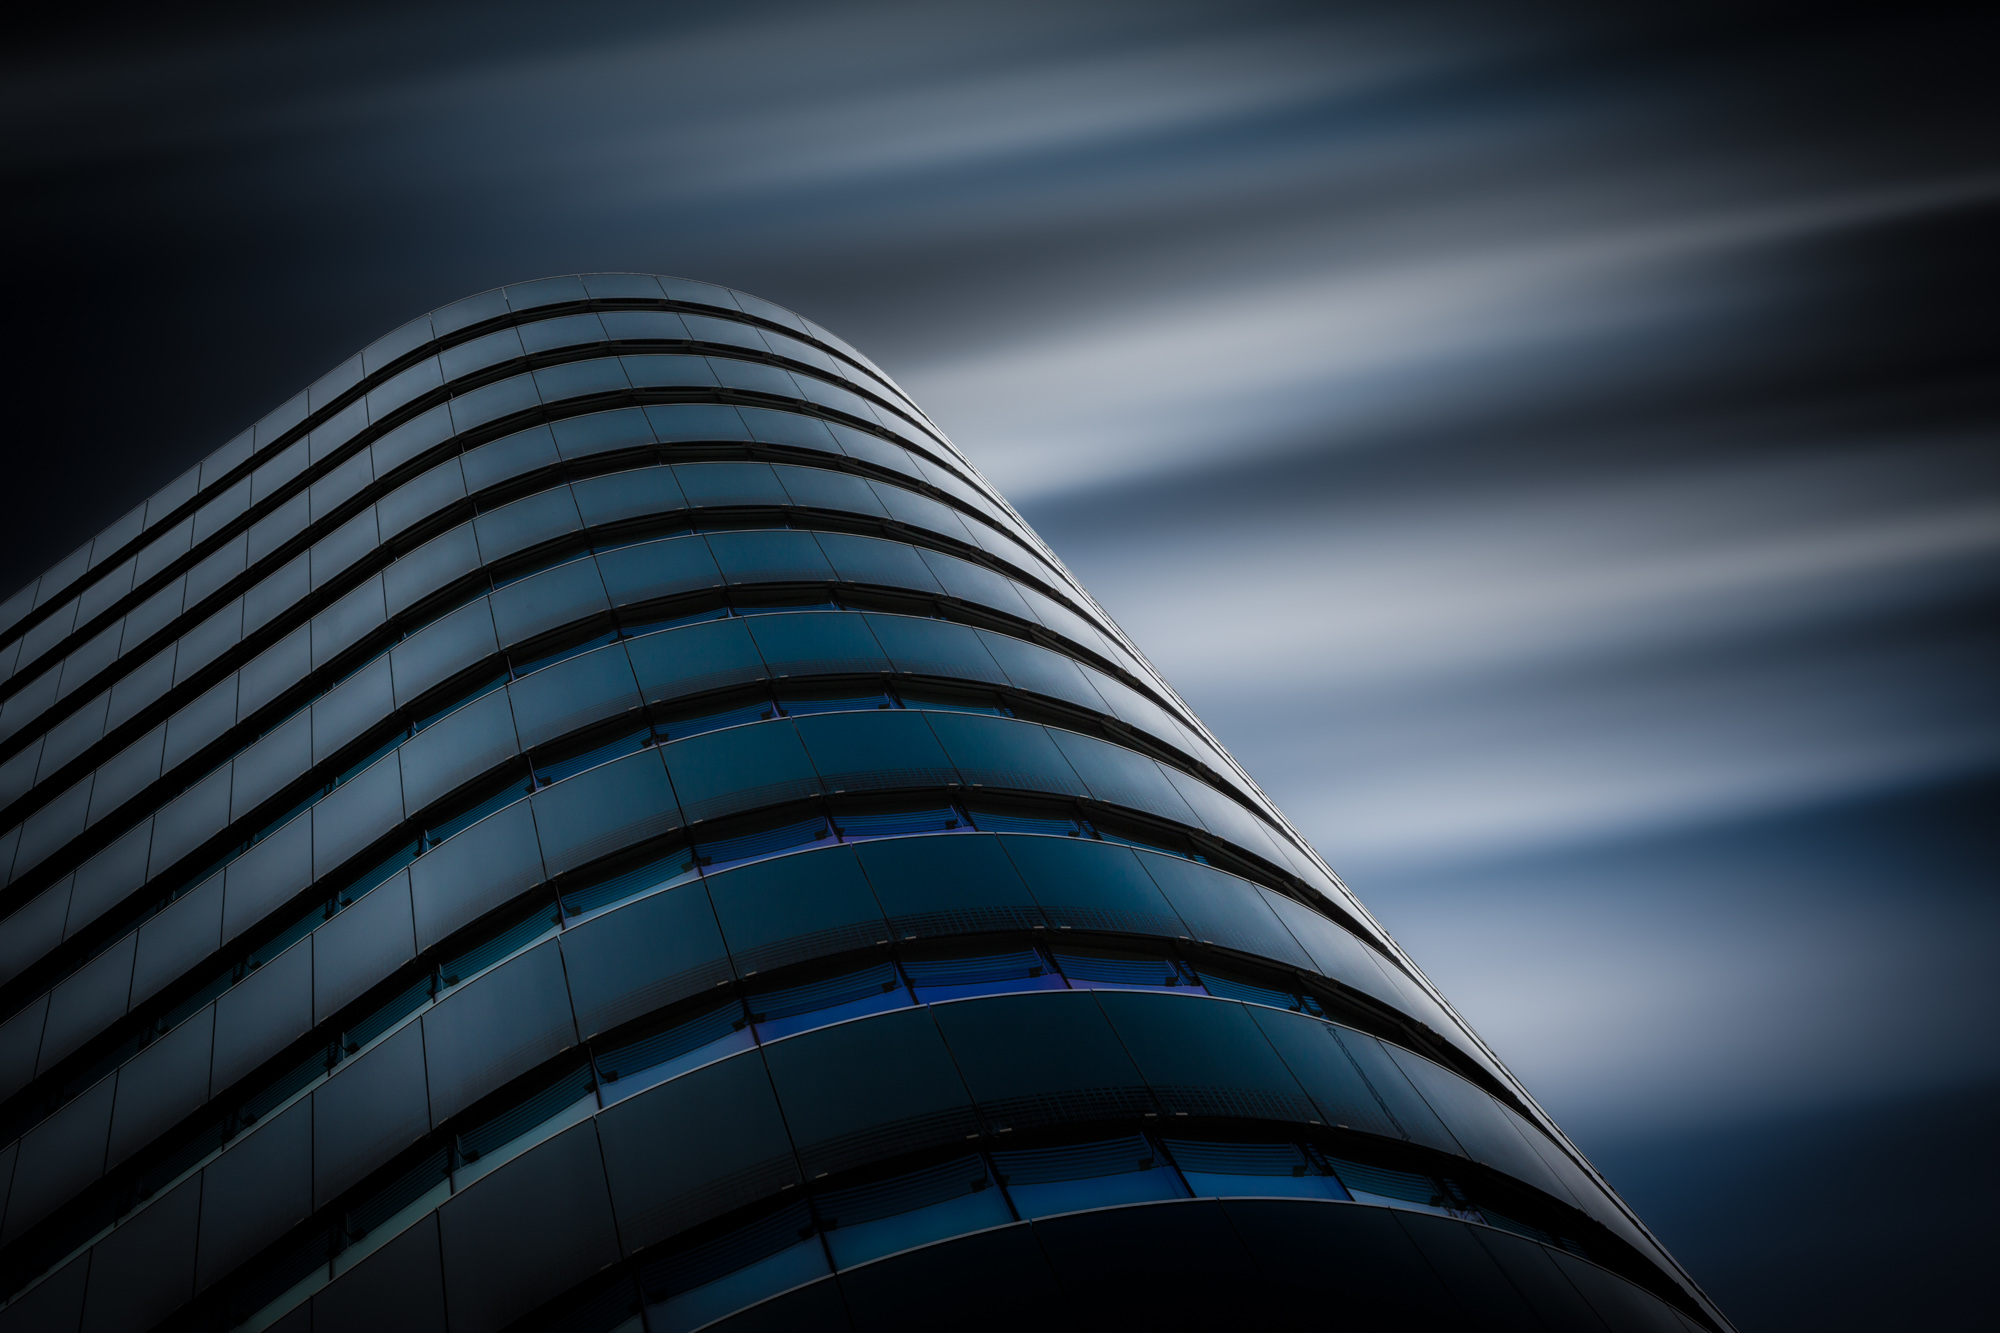 long exposure photograph of curved blue glass modern architecture